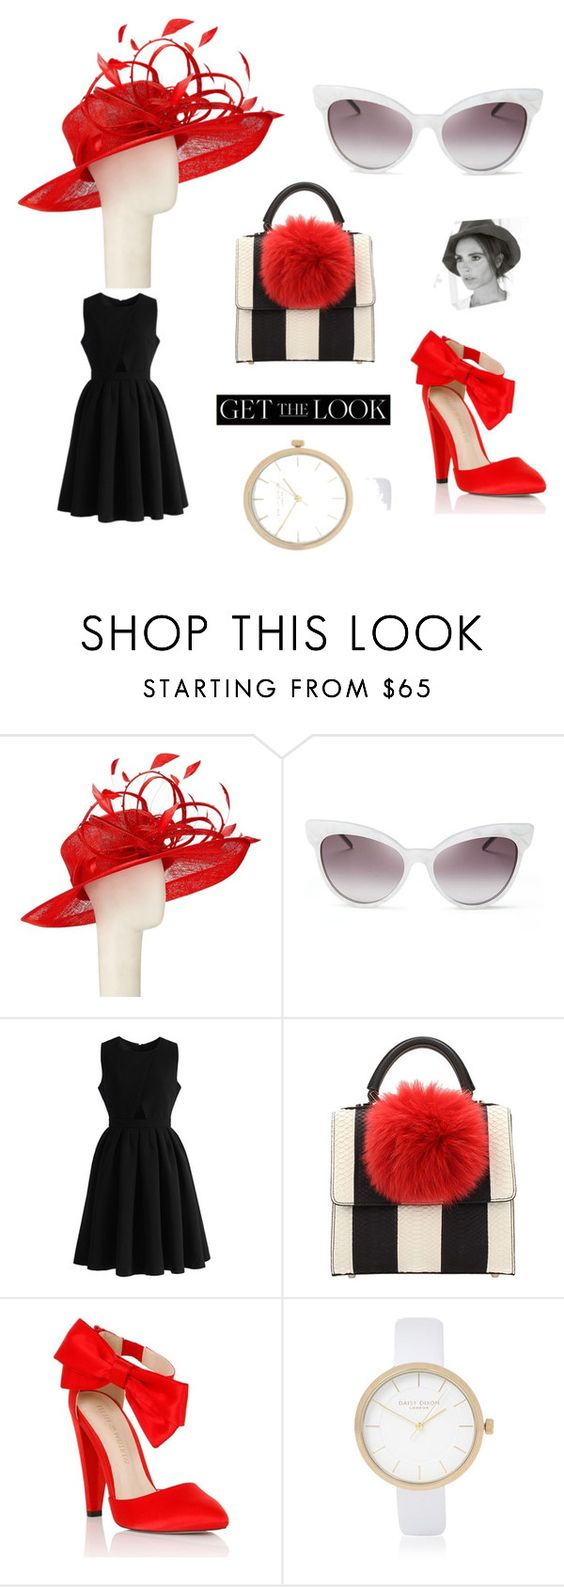 """""""@takealookmydear"""" by fashionshelter ❤ liked on Polyvore featuring John Lewis, Wildfox, Chicwish, Victoria Beckham, Les Petits Joueurs, Lipsy, River Island, GetTheLook and hats"""